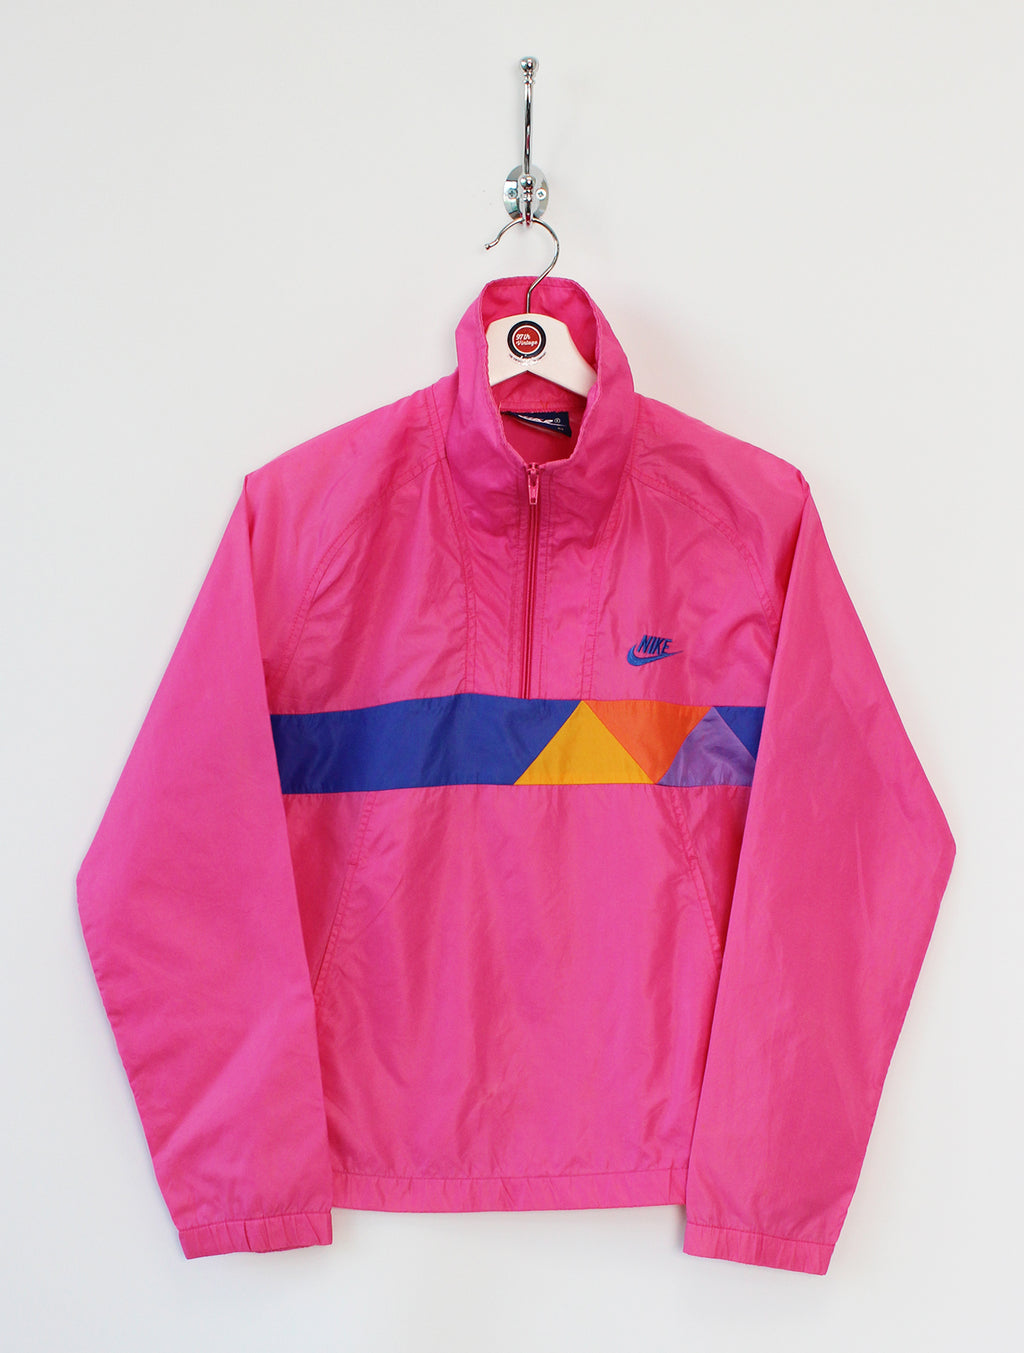 Women's Nike Windbreaker (M)